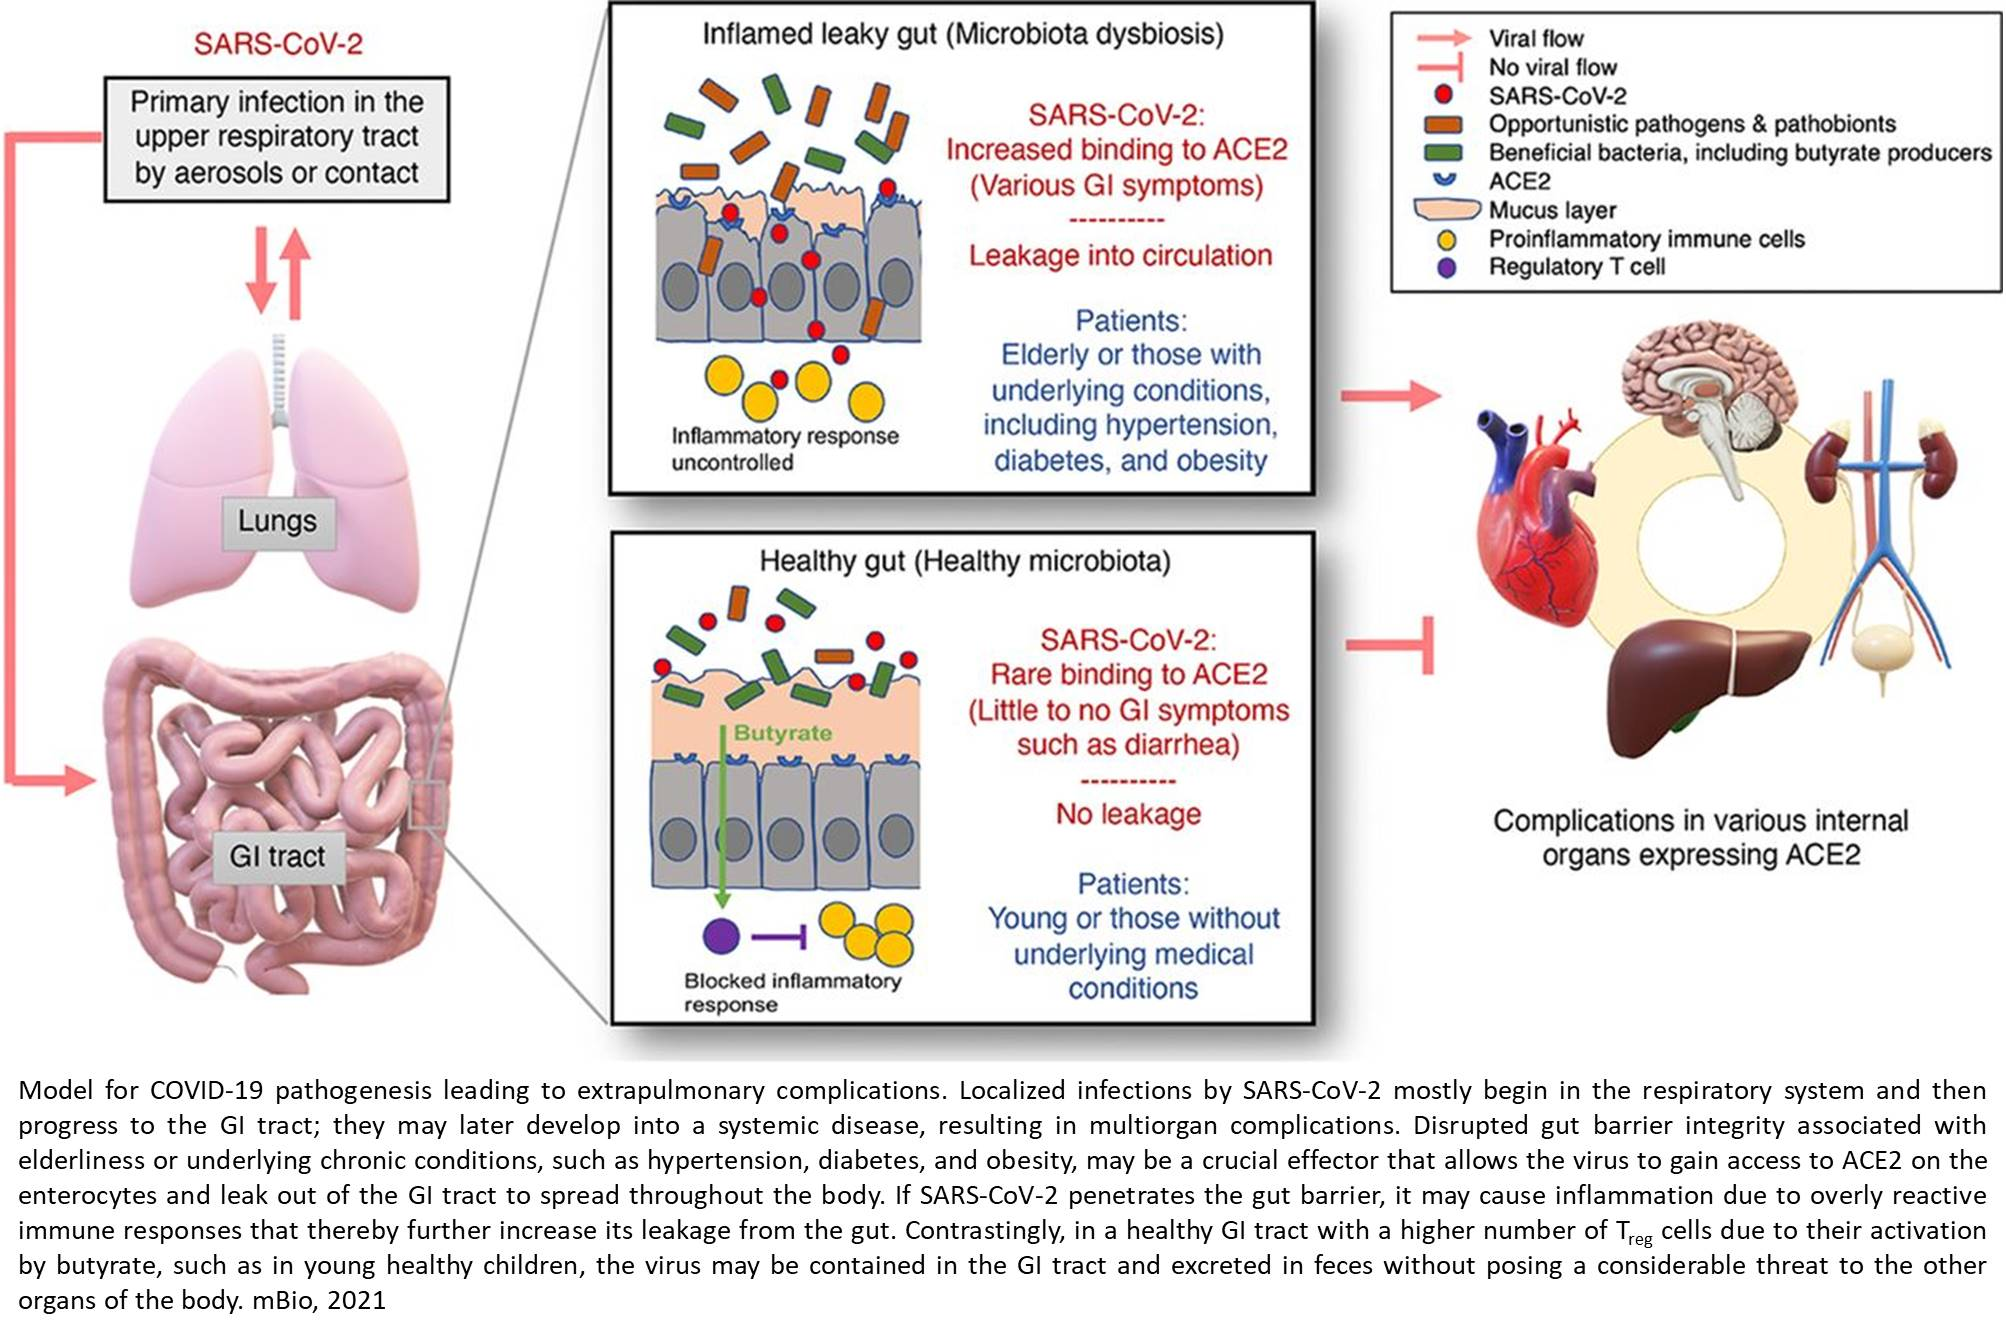 Do an Altered Gut Microbiota and an Associated Leaky Gut Affect COVID-19 Severity?